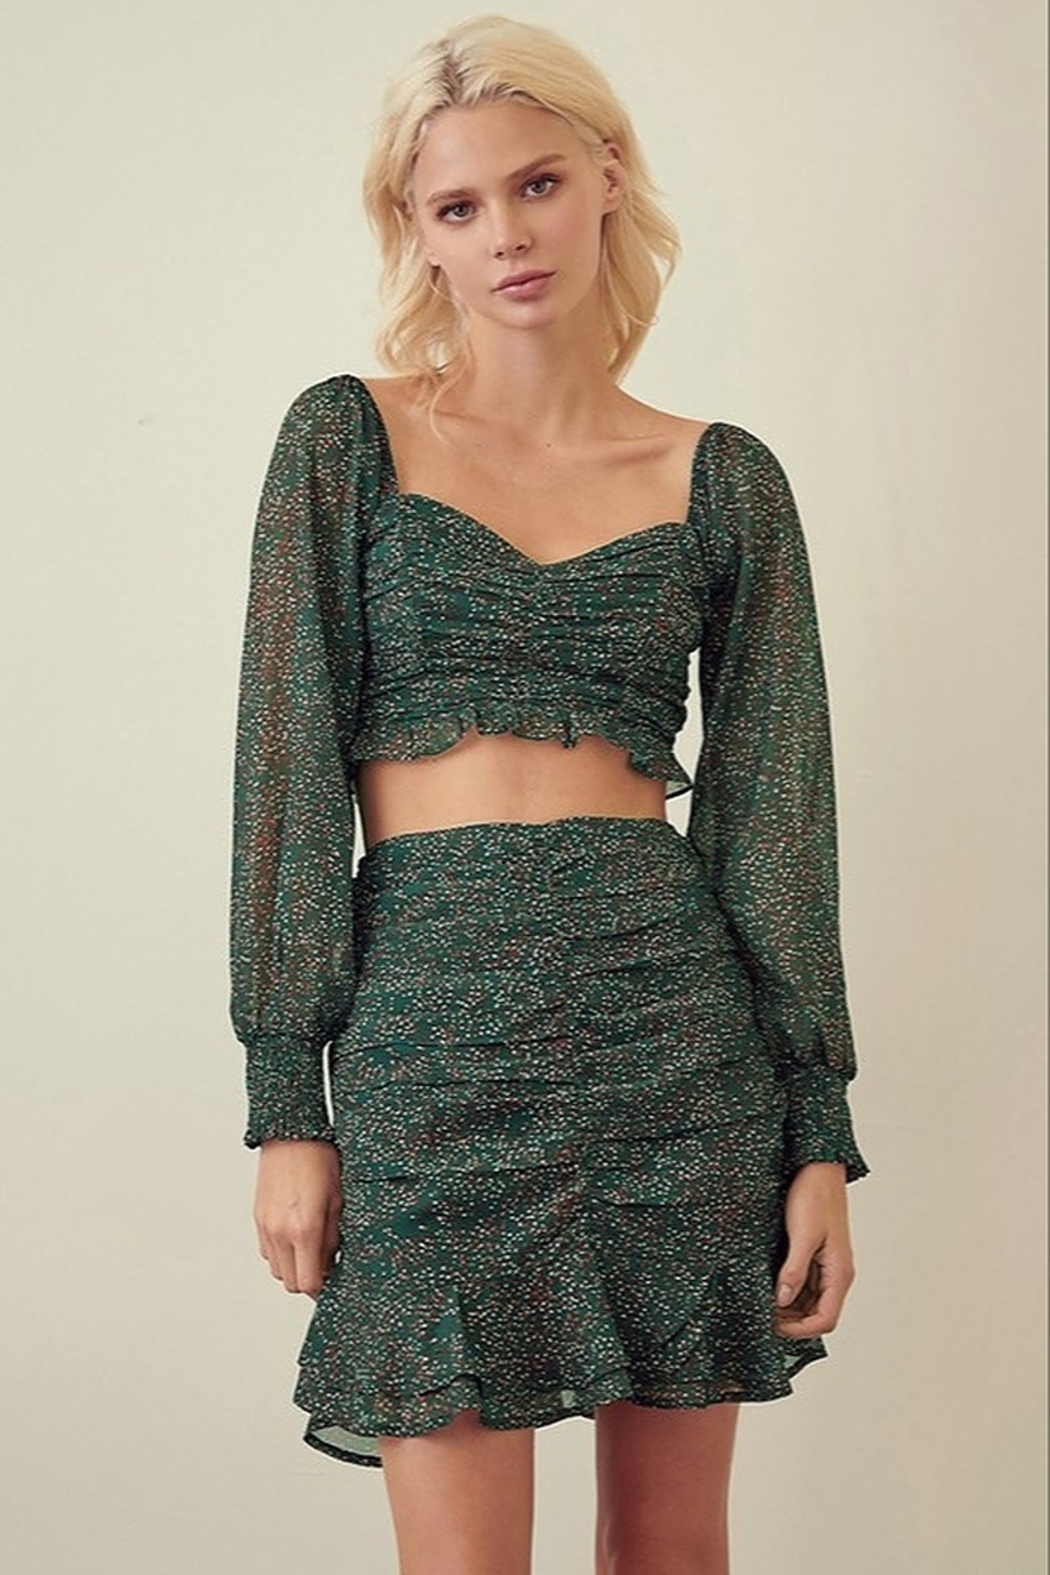 Green crop top STORIA SPECKLED SWEETHEART CROP TOP - Front Cropped Image